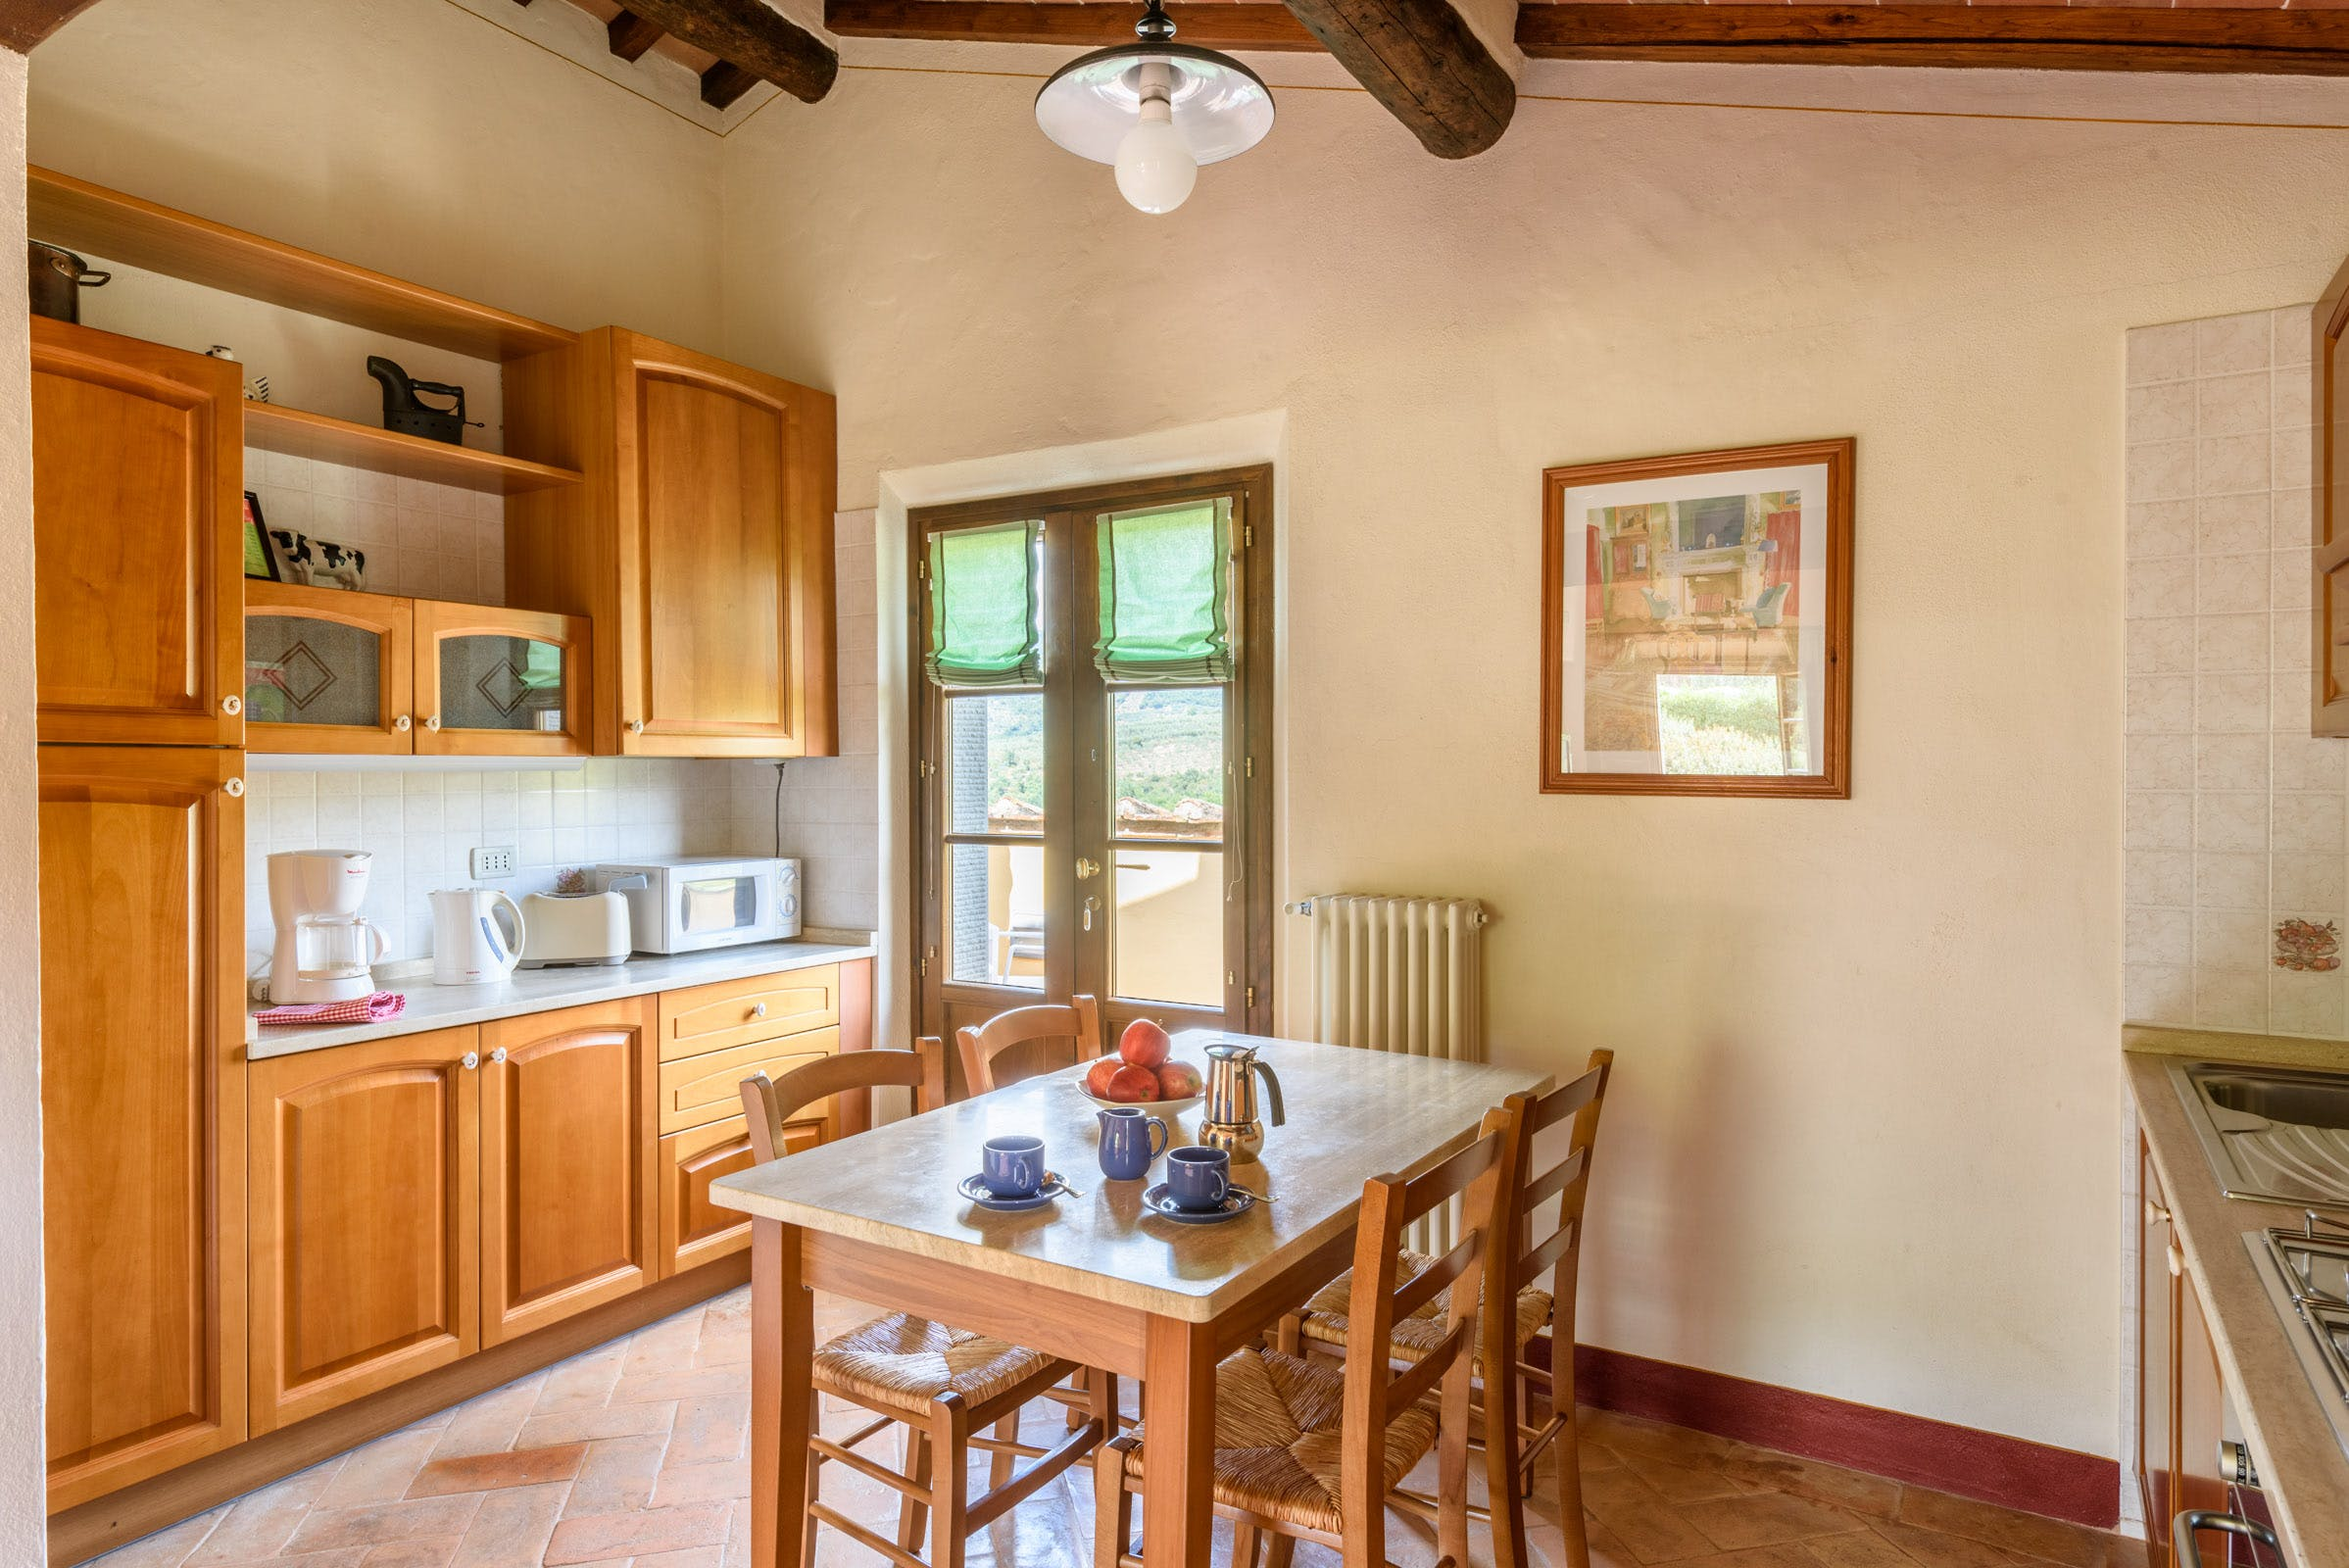 Casa Portagioia Tuscany bed and breakfast ,Funghini suite with double bedroom Kitchen area